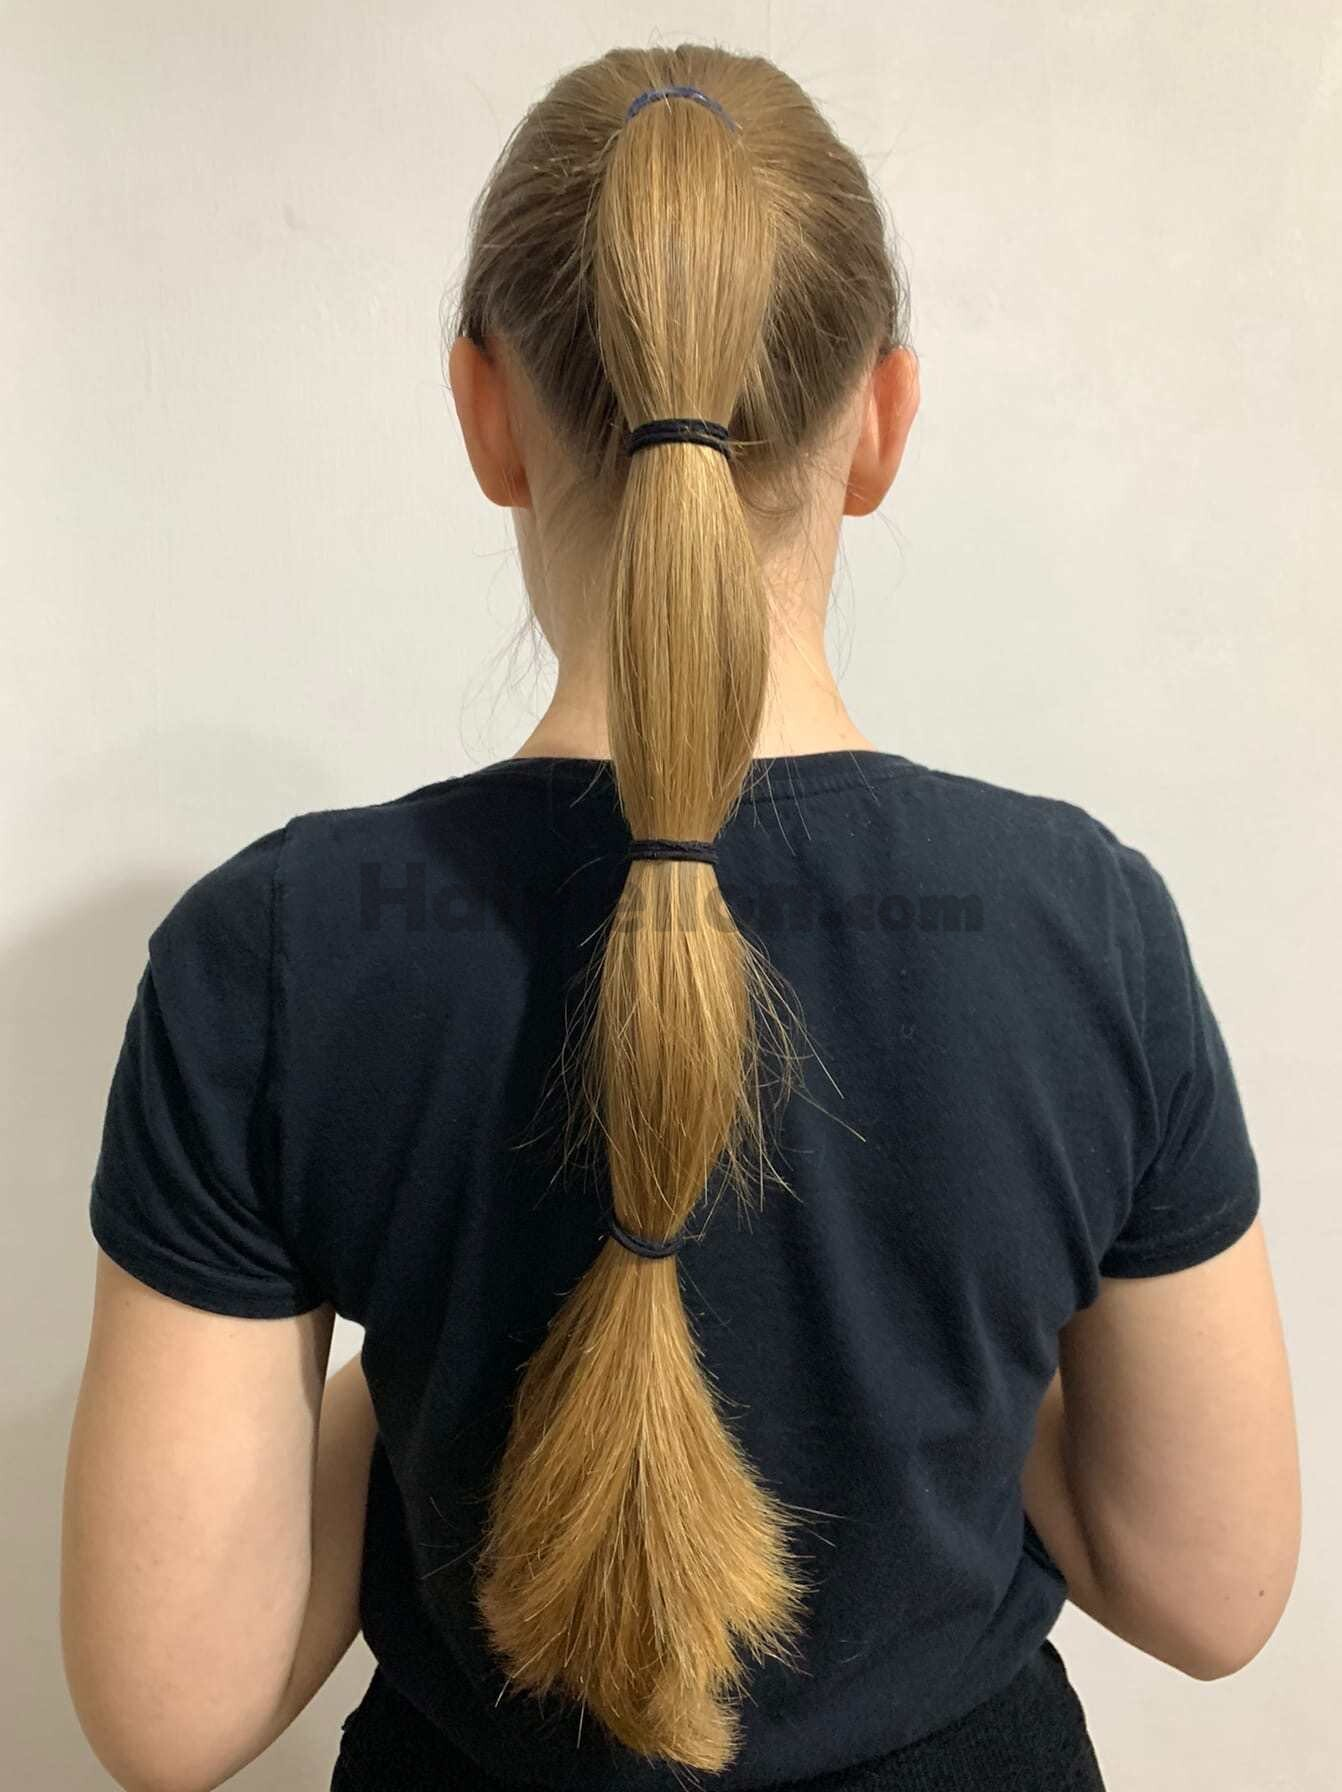 Hair in the ponytail.